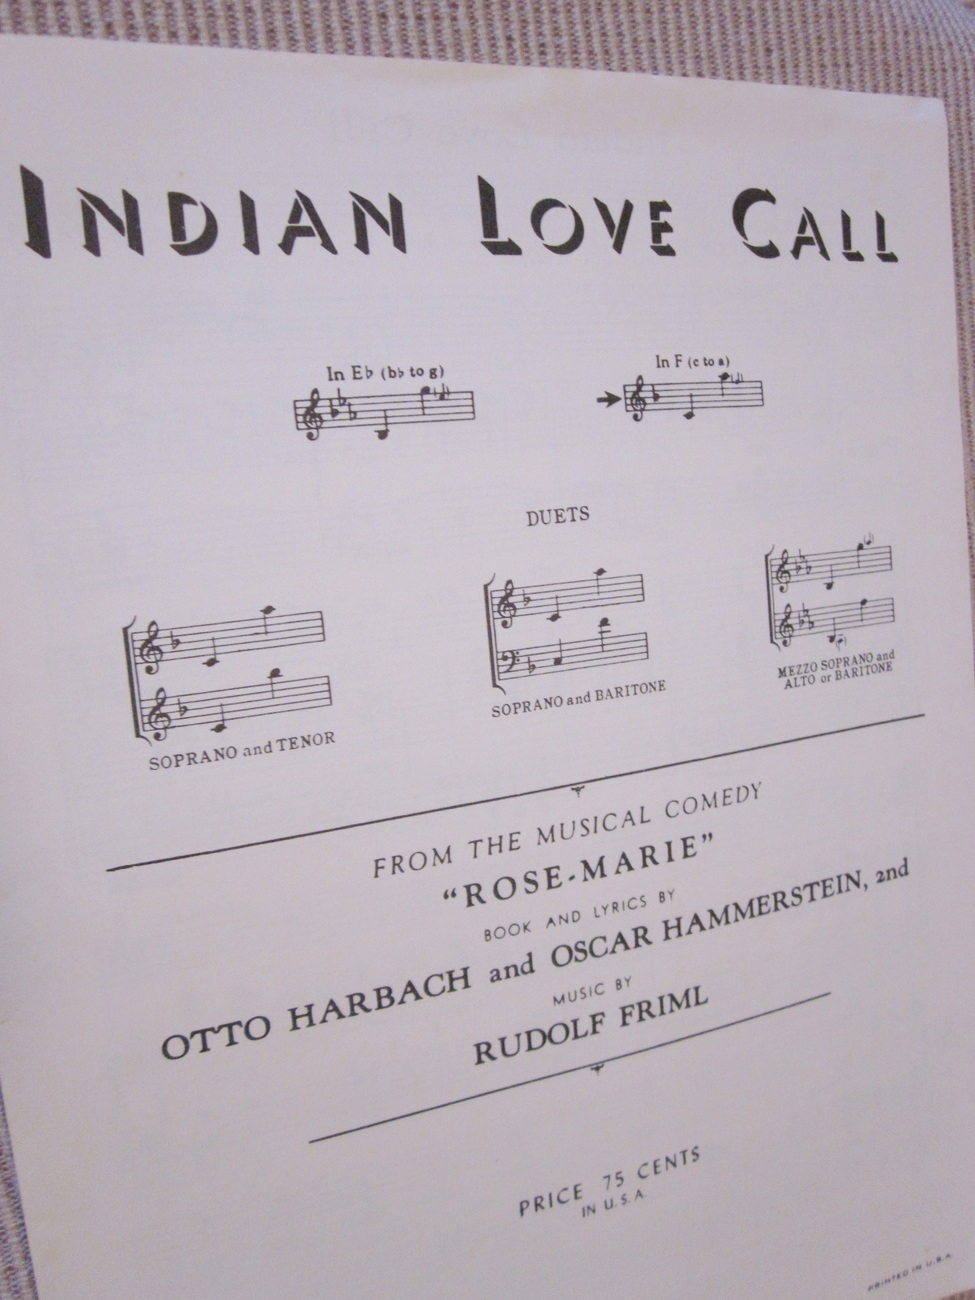 Vintage Sheet Music Indian Love Call 1924 by Harbach, Hammerstein, Friml lot 2